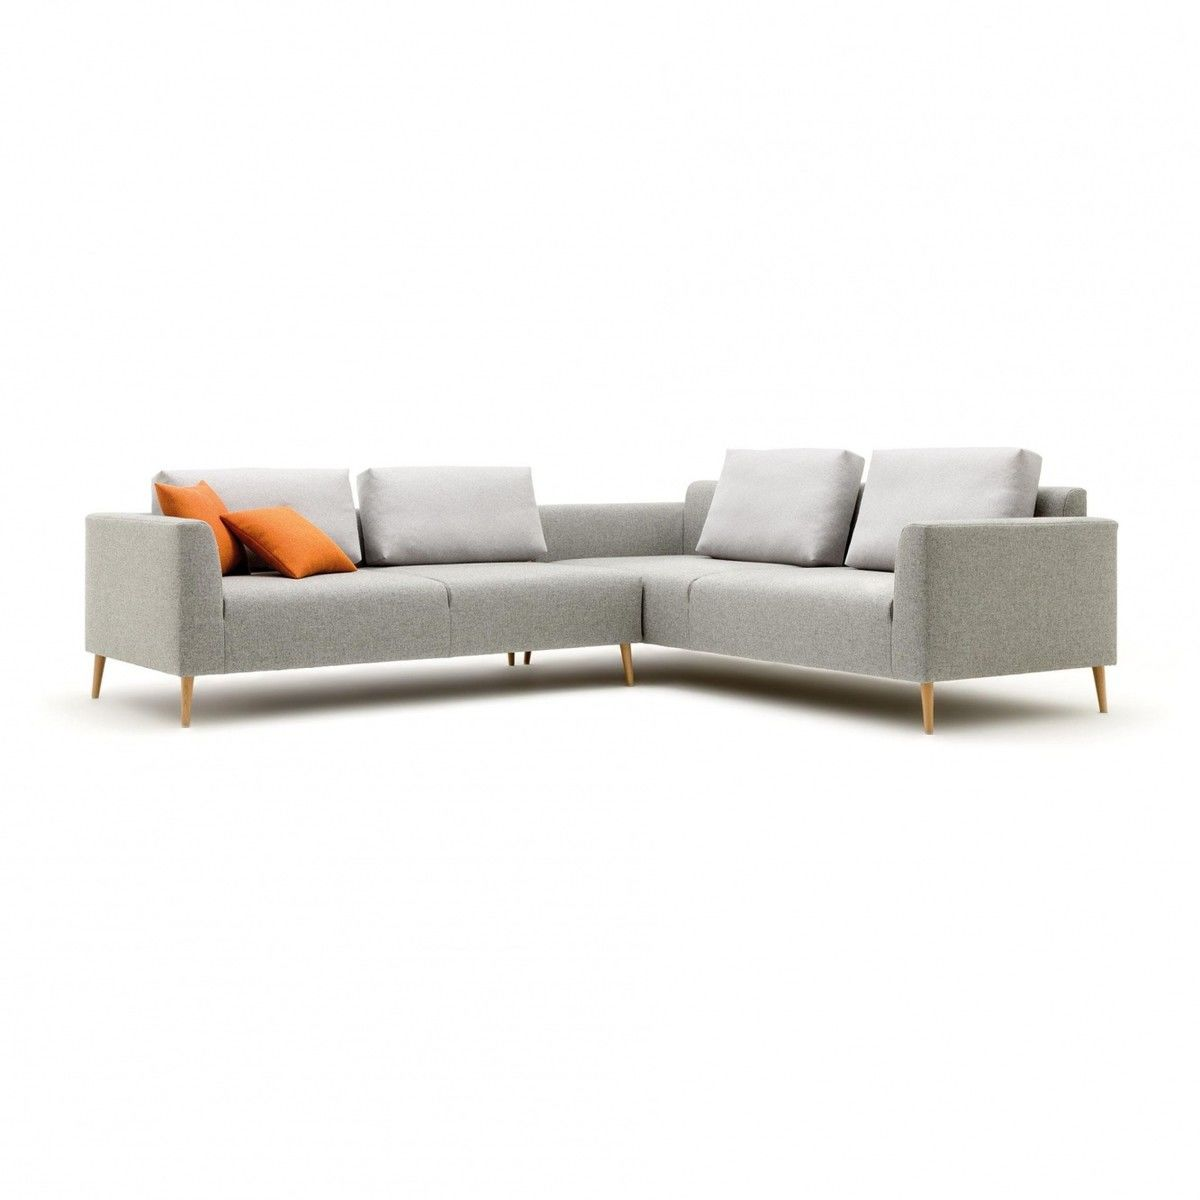 Freistil 162 Sofa Freistil Rolf Benz